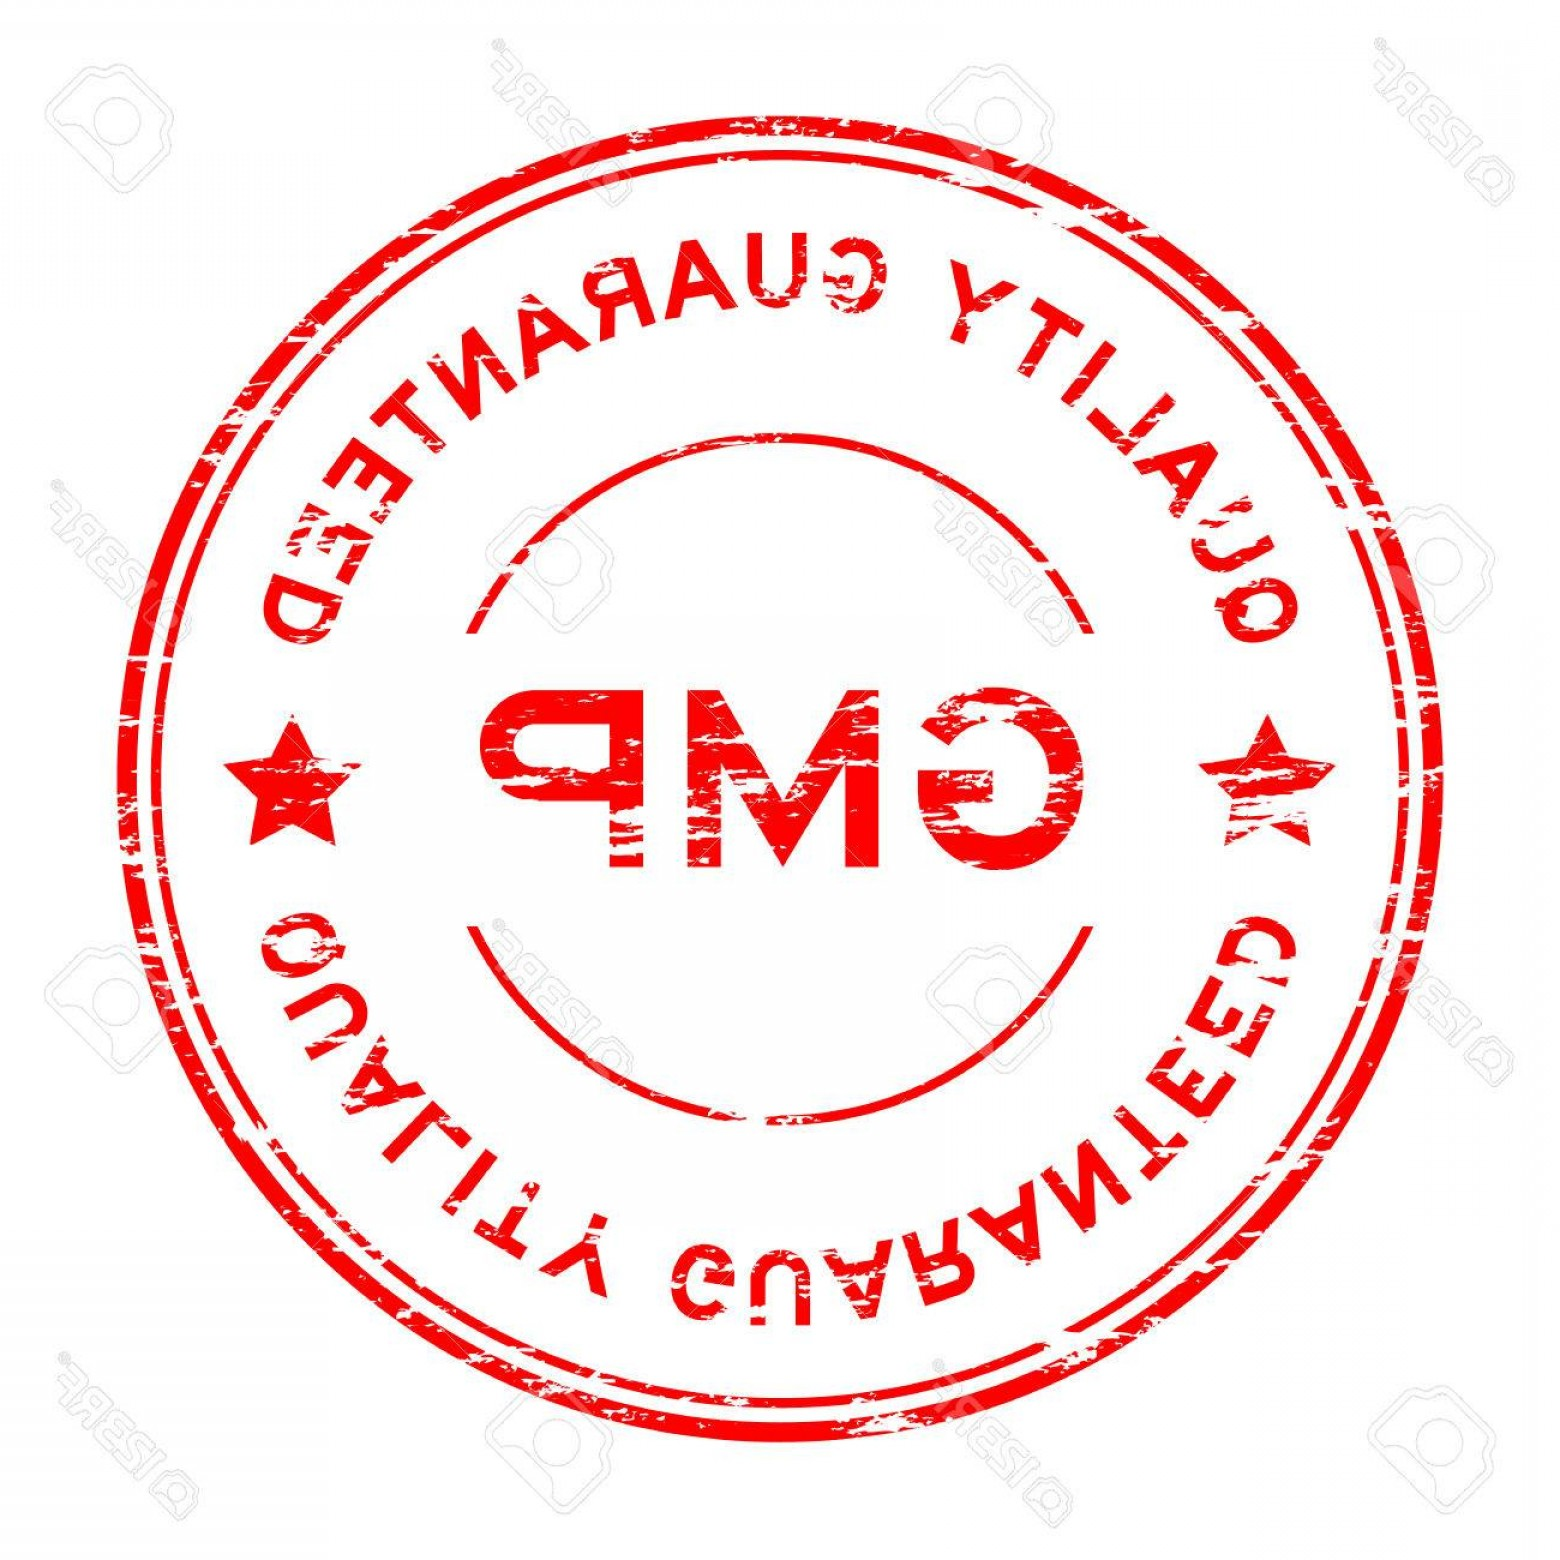 GMP Logo Vector: Photostock Vector Grunge Red Gmp Good Manufacturing Practice And Quality Guarantee Rubber Stamp